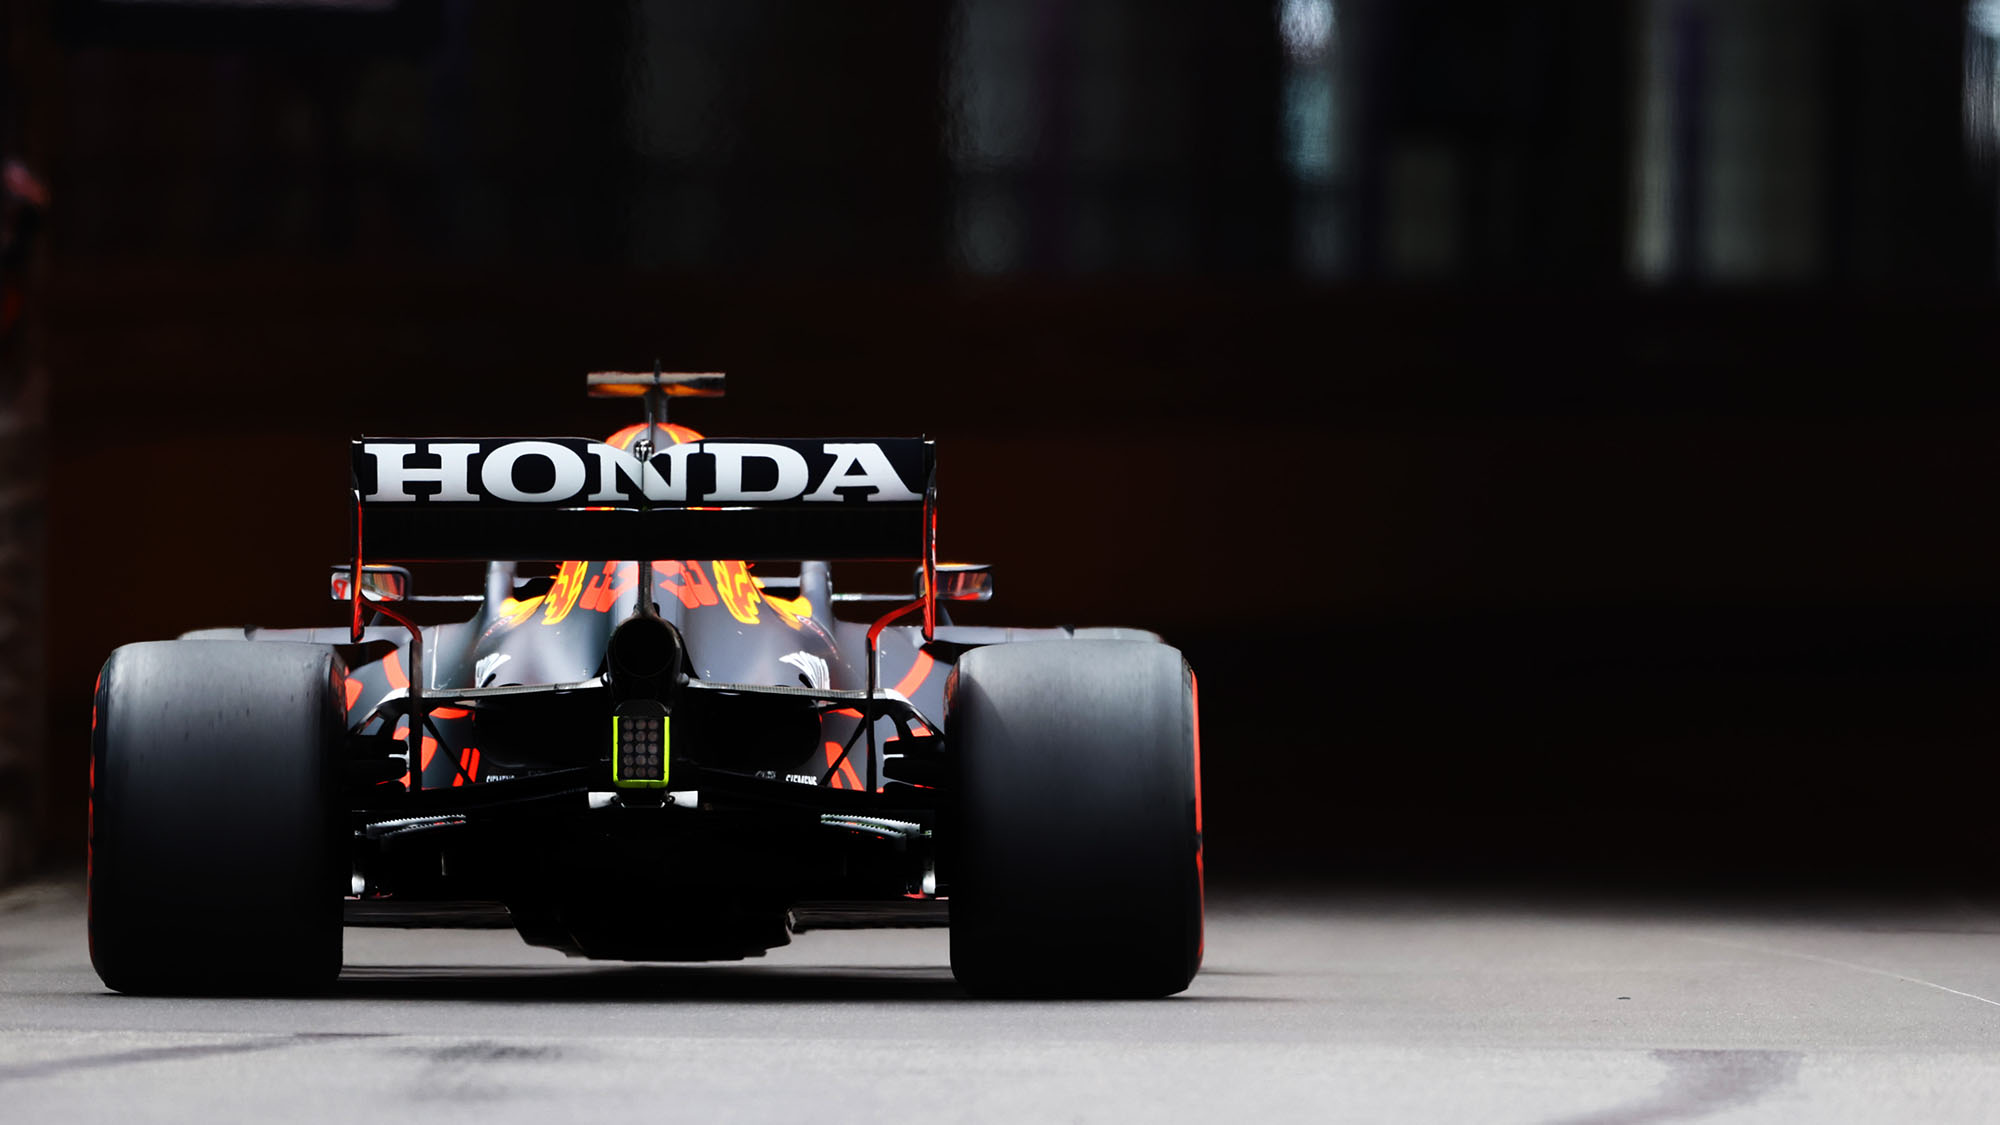 MONTE-CARLO, MONACO - MAY 22: Max Verstappen of the Netherlands driving the (33) Red Bull Racing RB16B Honda on track during final practice prior to the F1 Grand Prix of Monaco at Circuit de Monaco on May 22, 2021 in Monte-Carlo, Monaco. (Photo by Bryn Lennon/Getty Images)